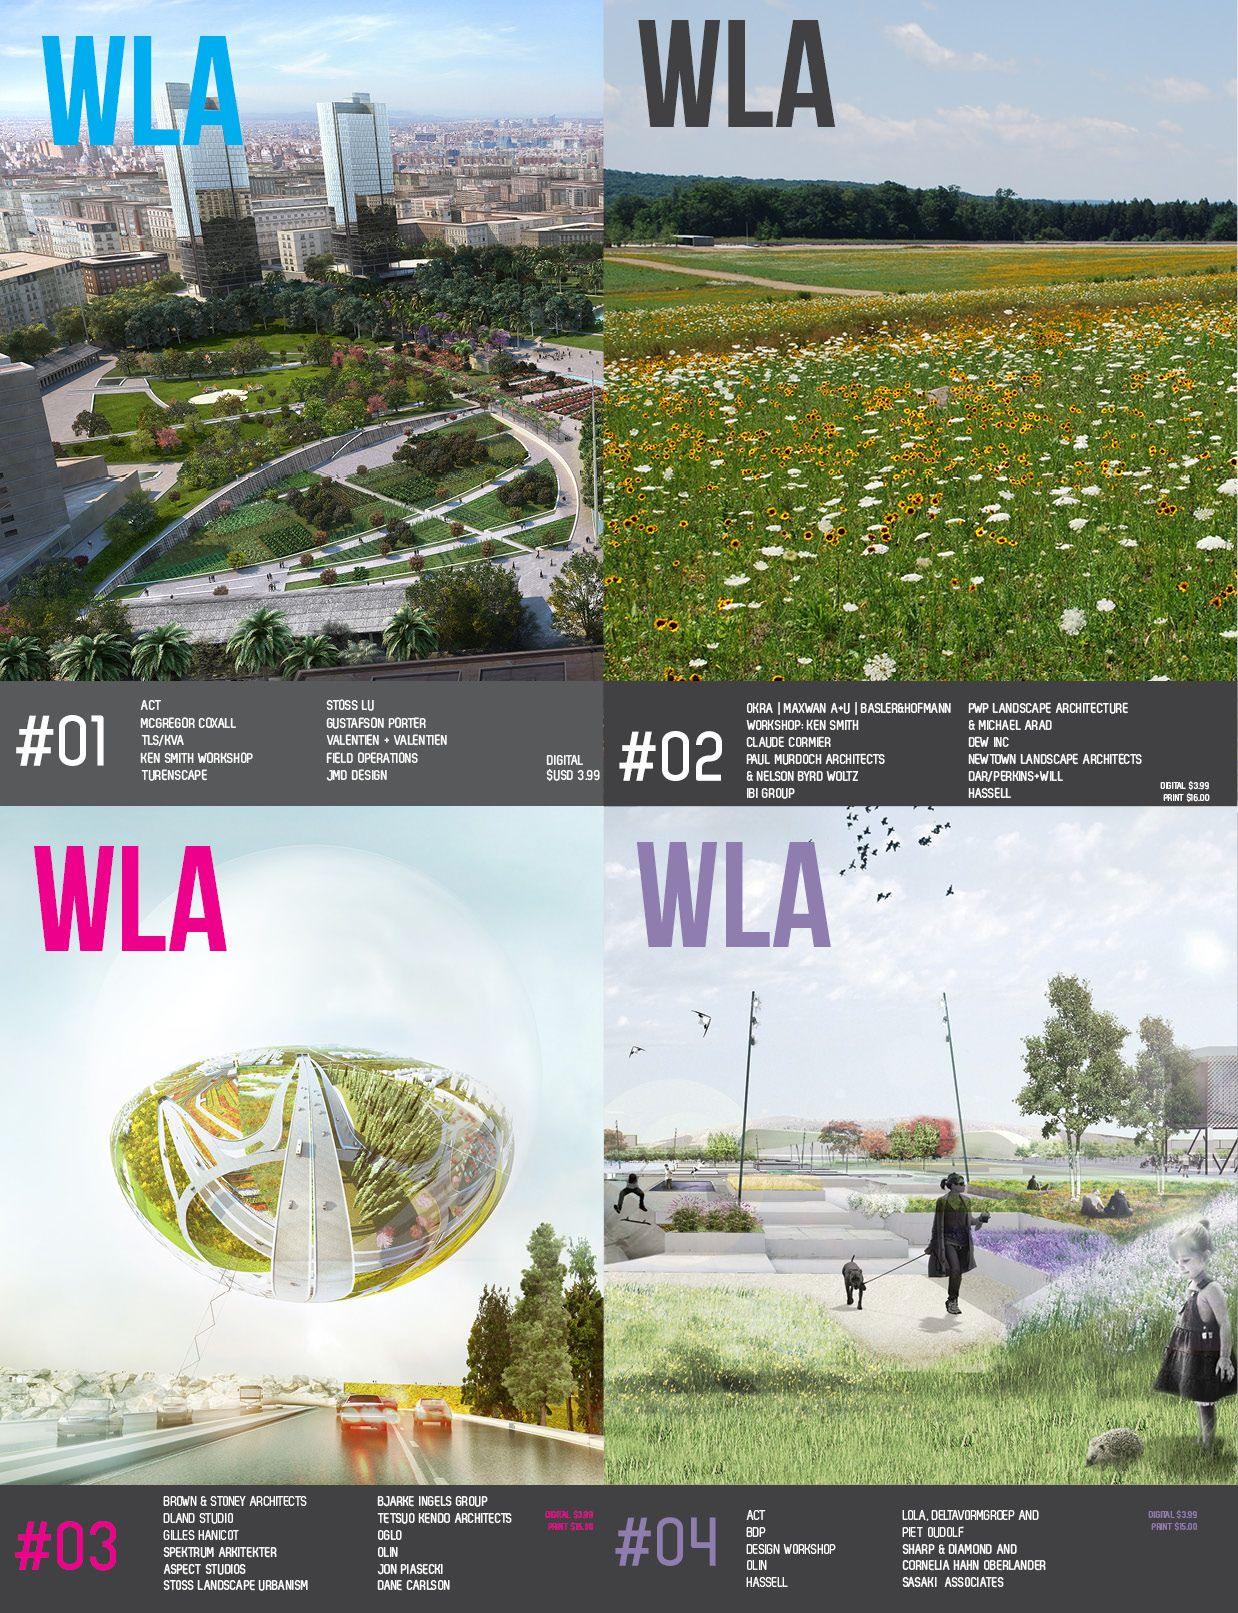 WLA Magazine VOLUME 1 | Editions 1 to 4 (1,2,3,4)